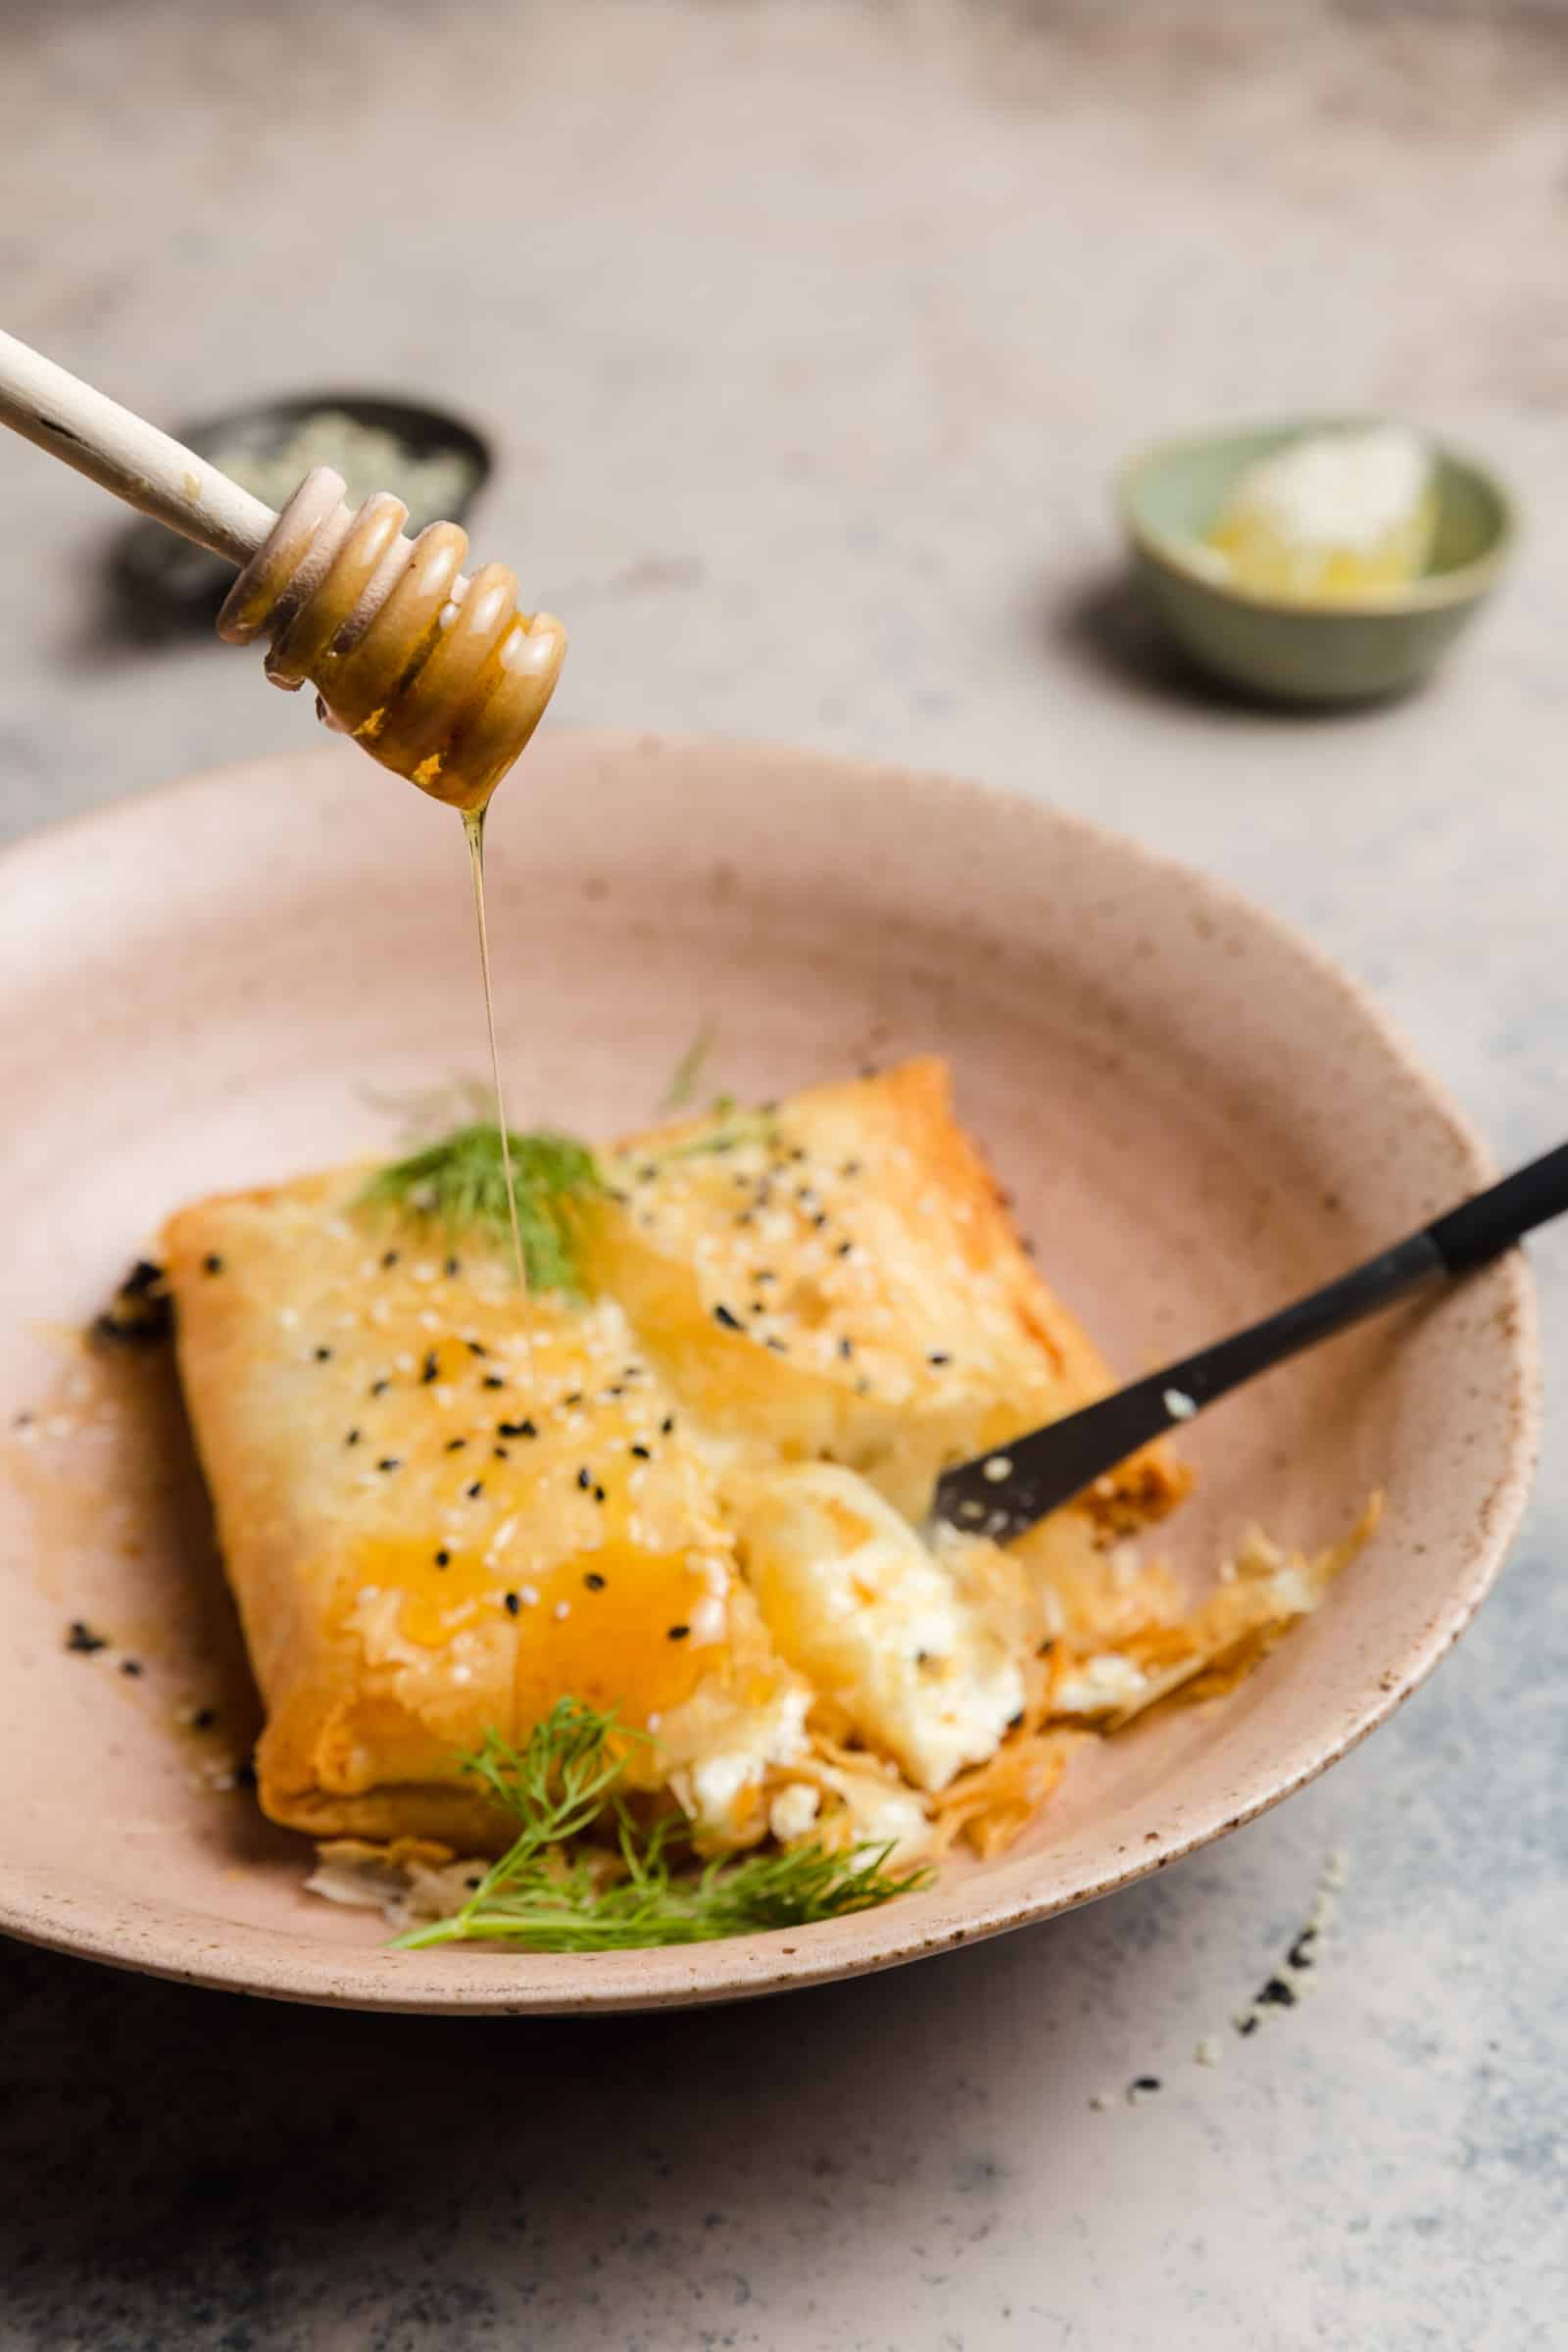 phyllo wrapped baked feta with sesame seeds, honey, and dill in a bowl